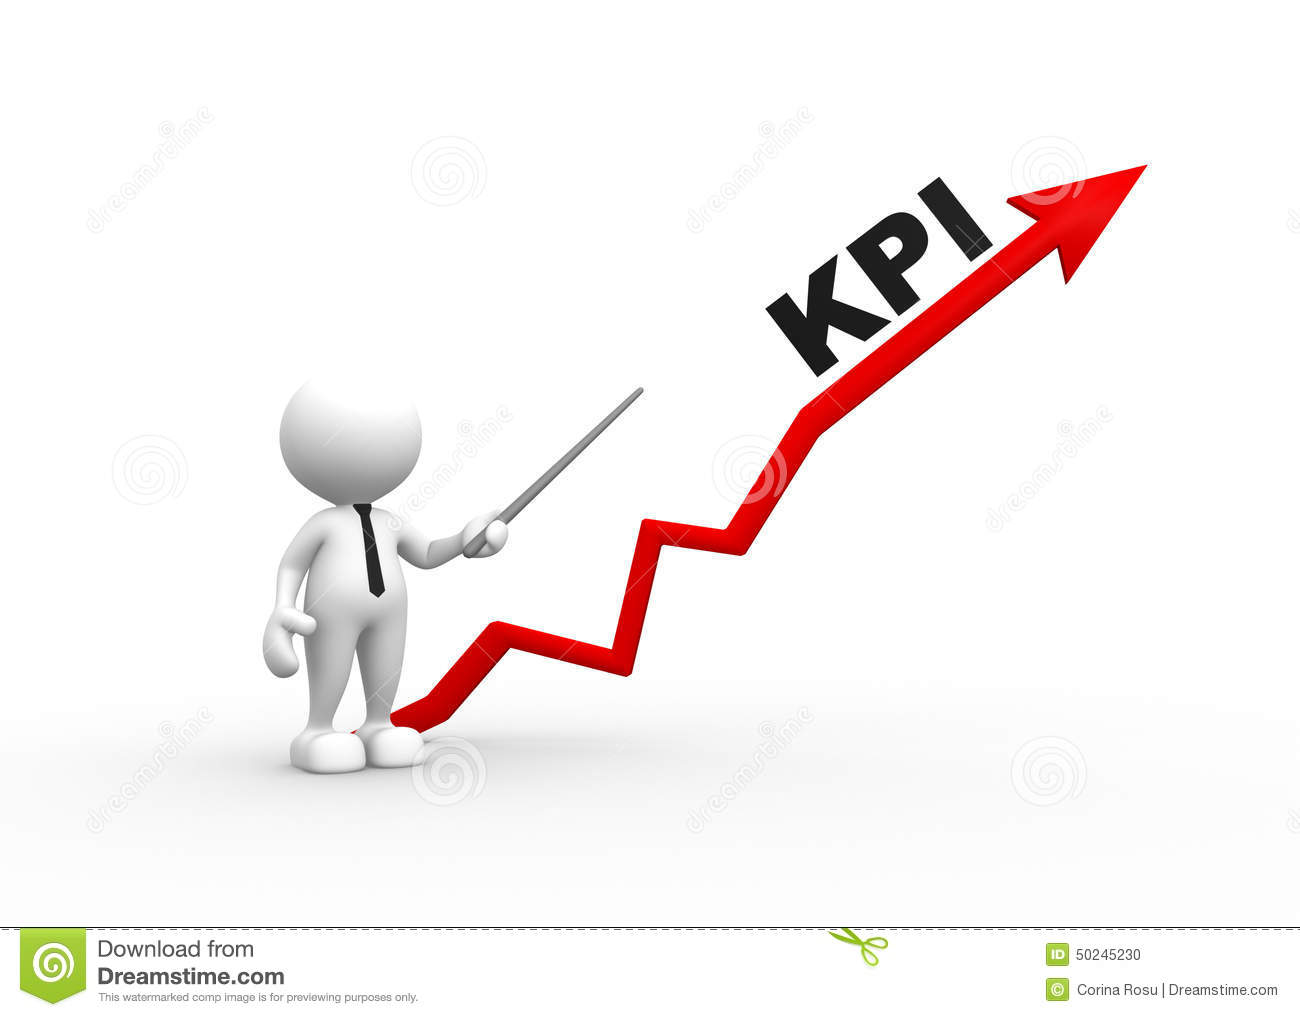 Key Performance Indicator Stock Photos, Images, & Pictures - 646 ...